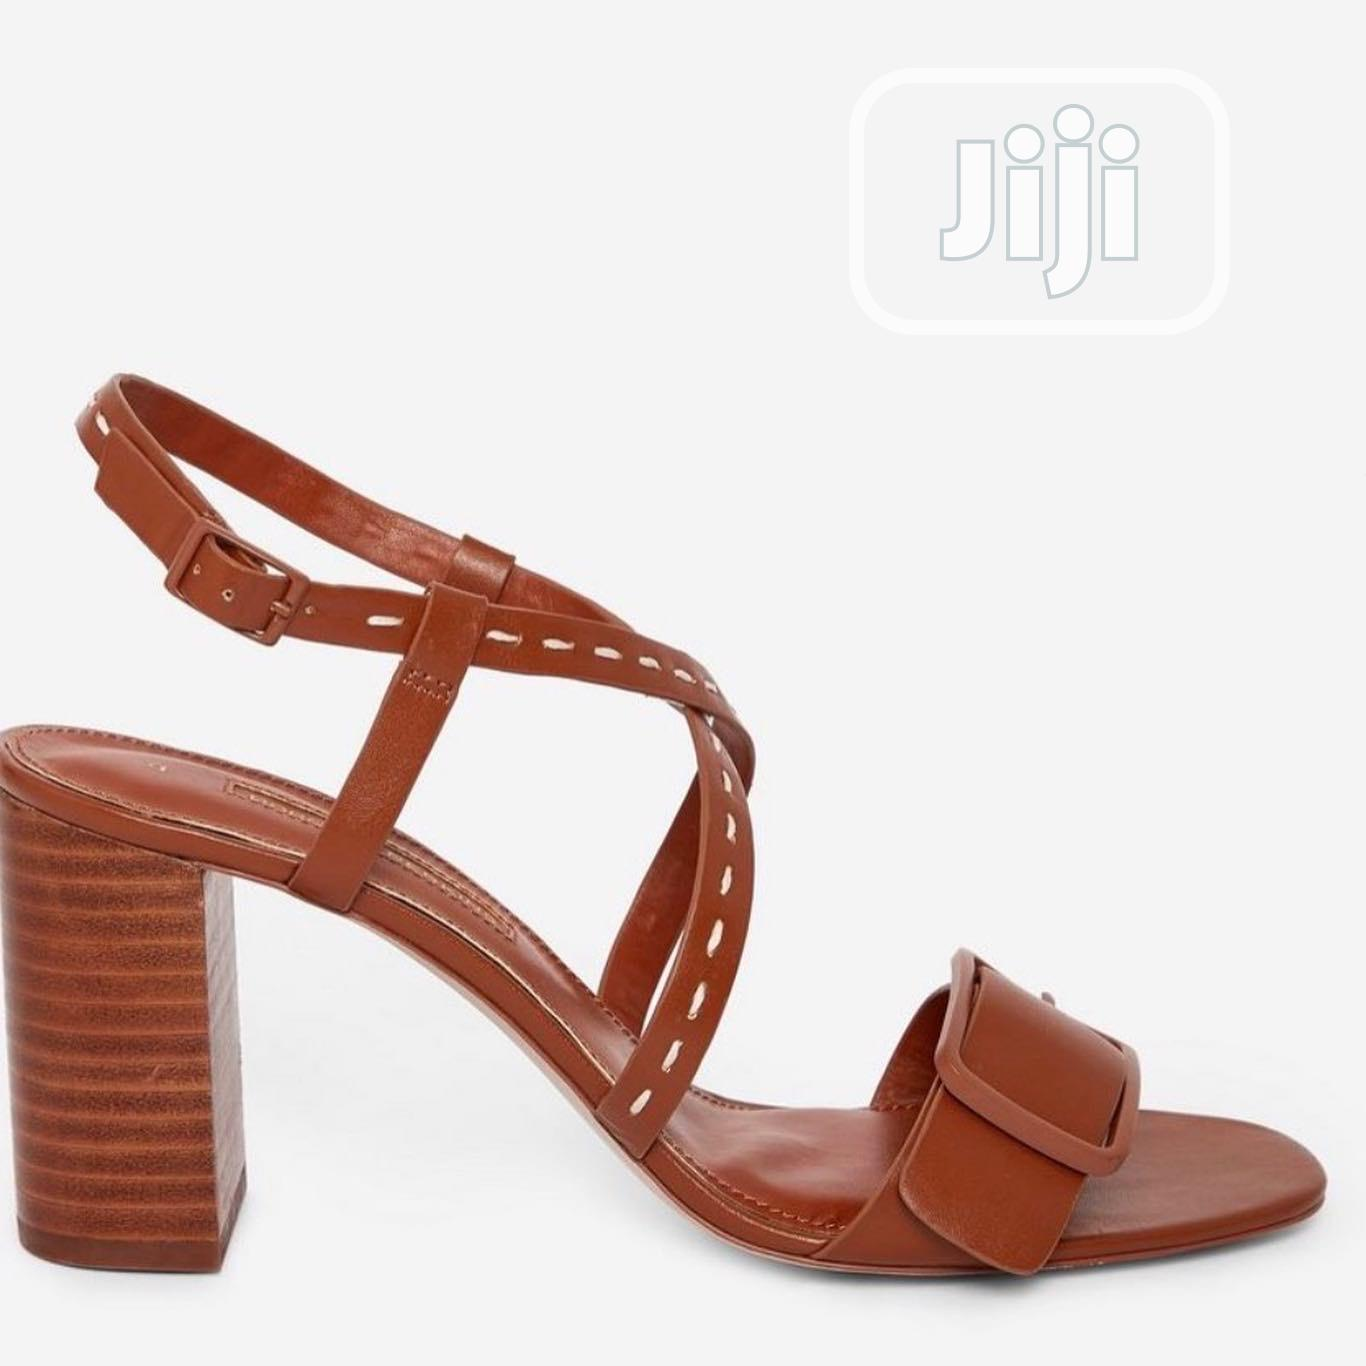 Brown Heeled Sandals | Shoes for sale in Lekki, Lagos State, Nigeria